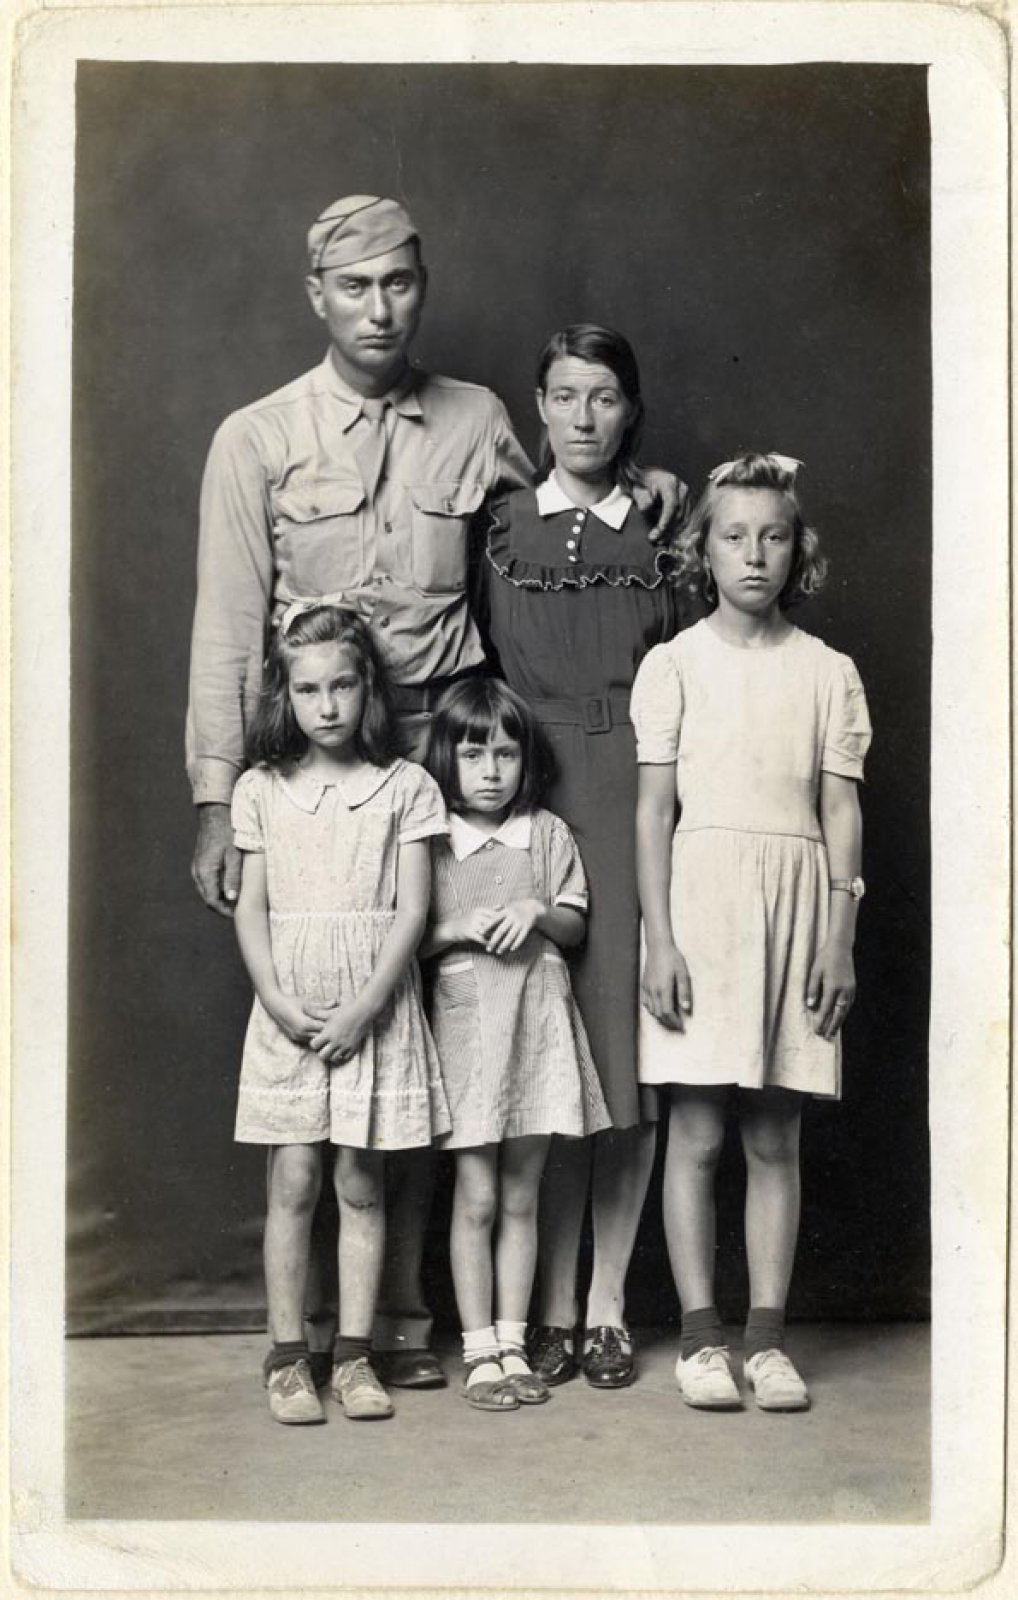 Mike Disfarmer,  Louie and Alma Ramer with their daughters Lucille, Avonell, and Faye Vintage gelatin silver print, ca. 1945  All prints courtesy of the Edwynn Houk Gallery or the private collection of Michael Mattis and Judith Hochberg